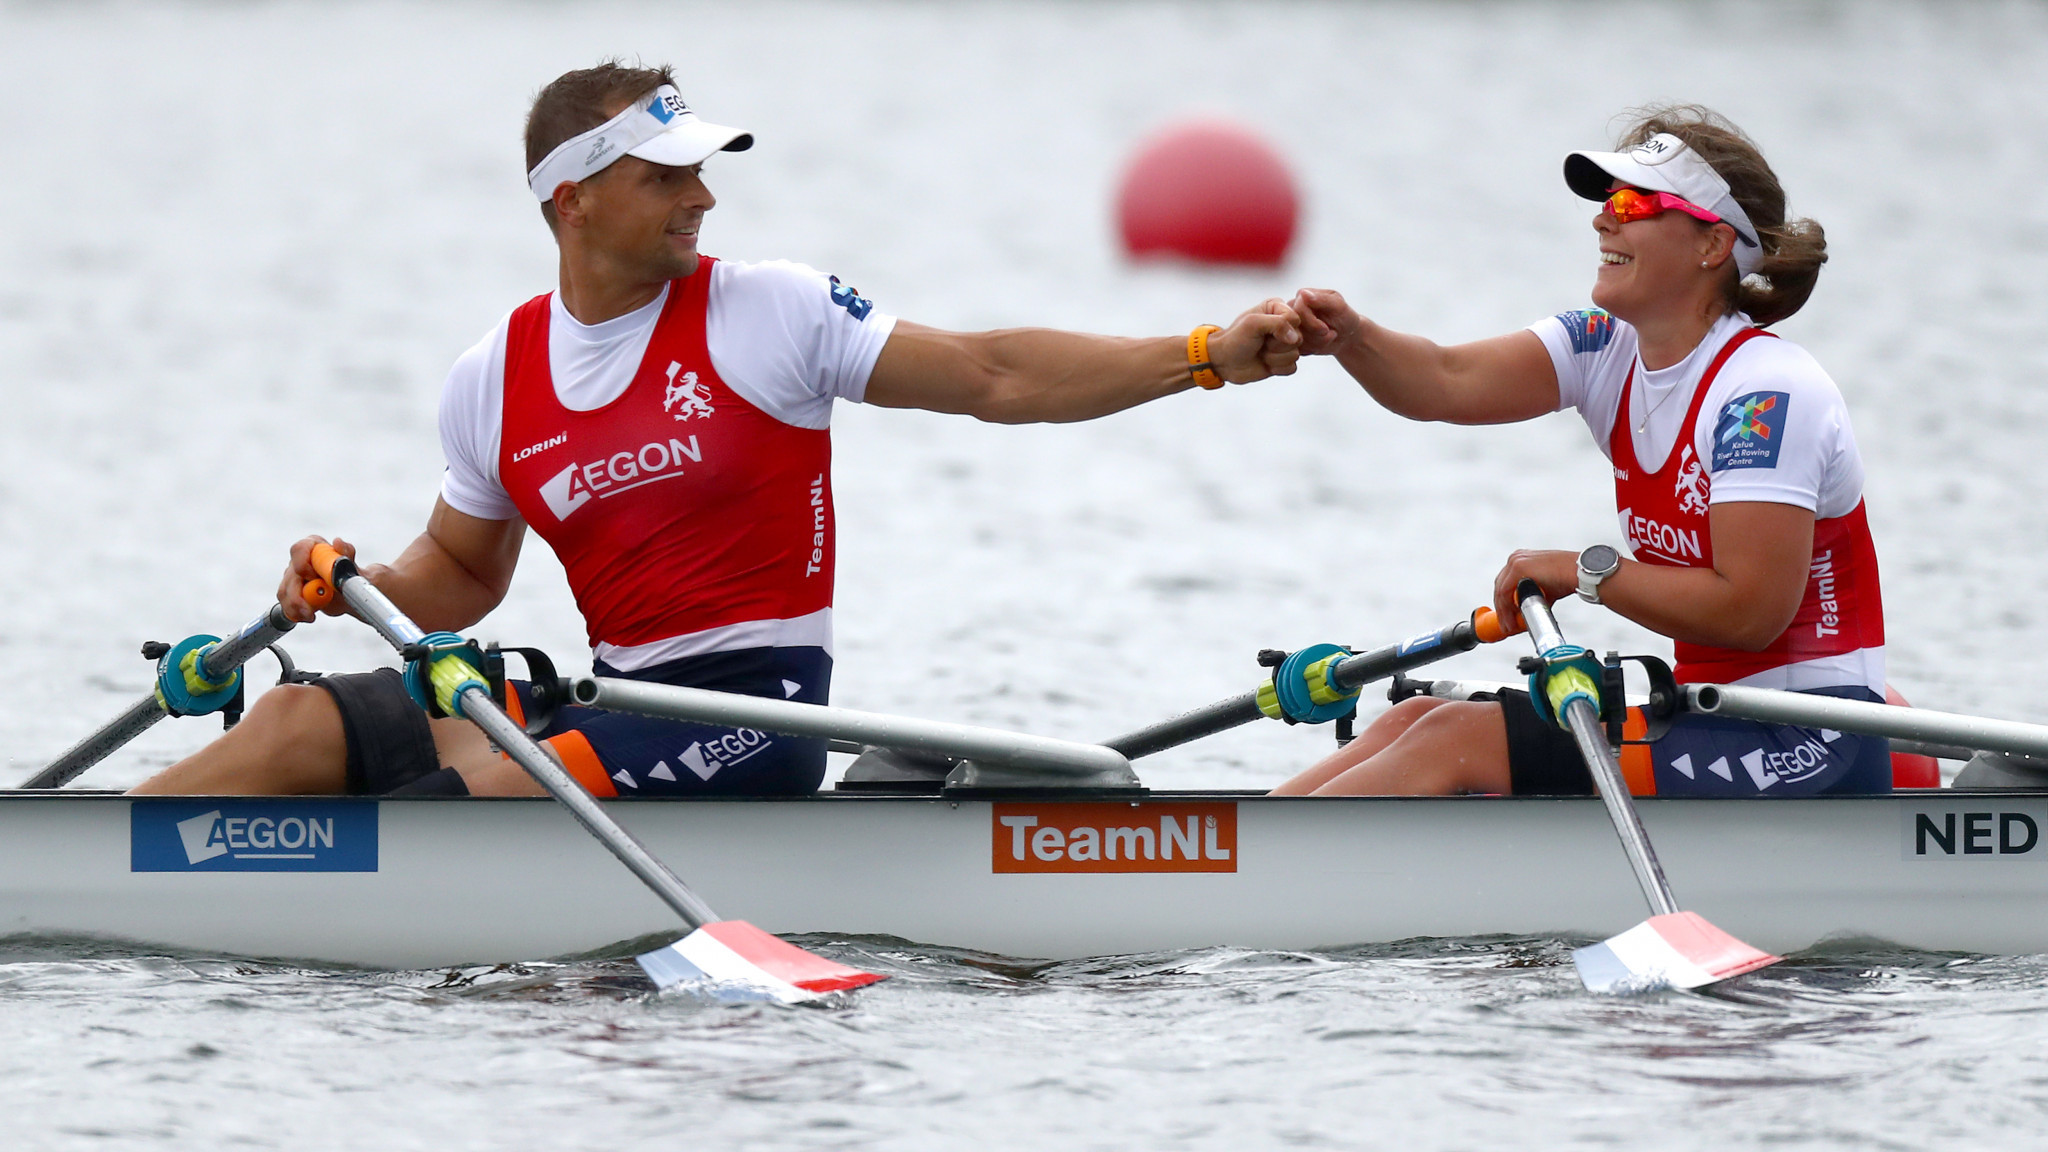 Corne de Koning and Annika van der Meer will contest the mixed double sculls PR2 event ©Getty Images